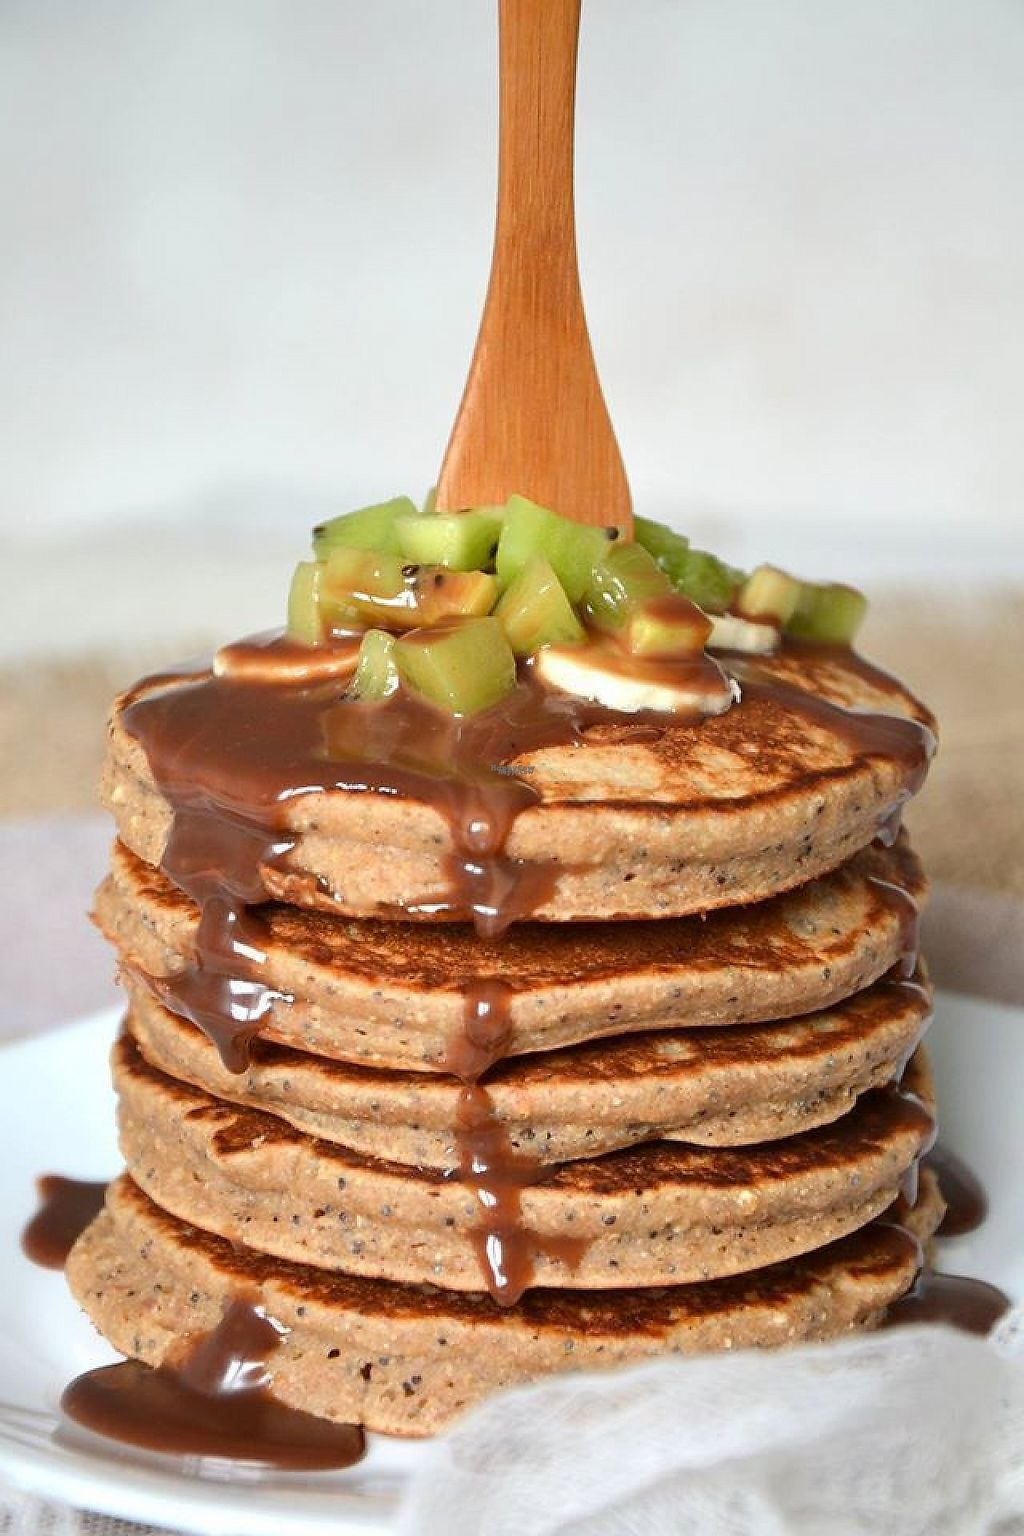 """Photo of La Vie Claire  by <a href=""""/members/profile/community"""">community</a> <br/>vegan pancakes  <br/> February 4, 2017  - <a href='/contact/abuse/image/68787/221834'>Report</a>"""